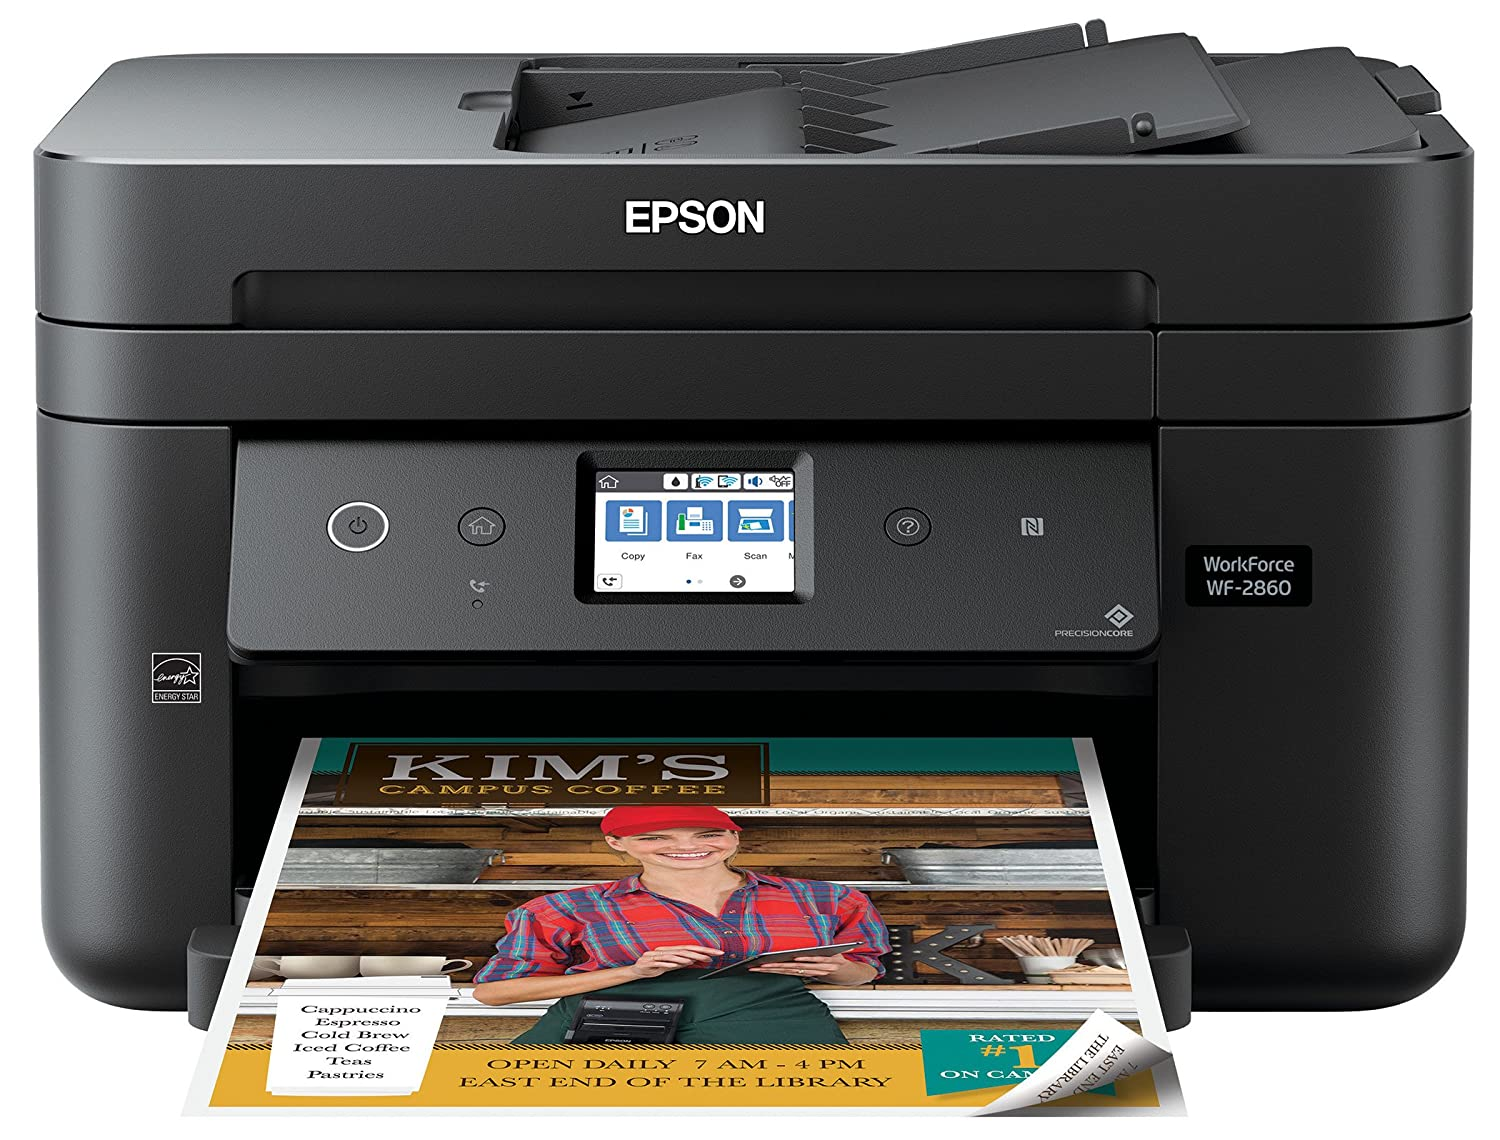 Epson Workforce WF-2860 All-in-One Wireless Color Printer with Scanner, Copier, Fax, Ethernet, Wi-Fi Direct and NFC,  Dash Replenishment Enabled